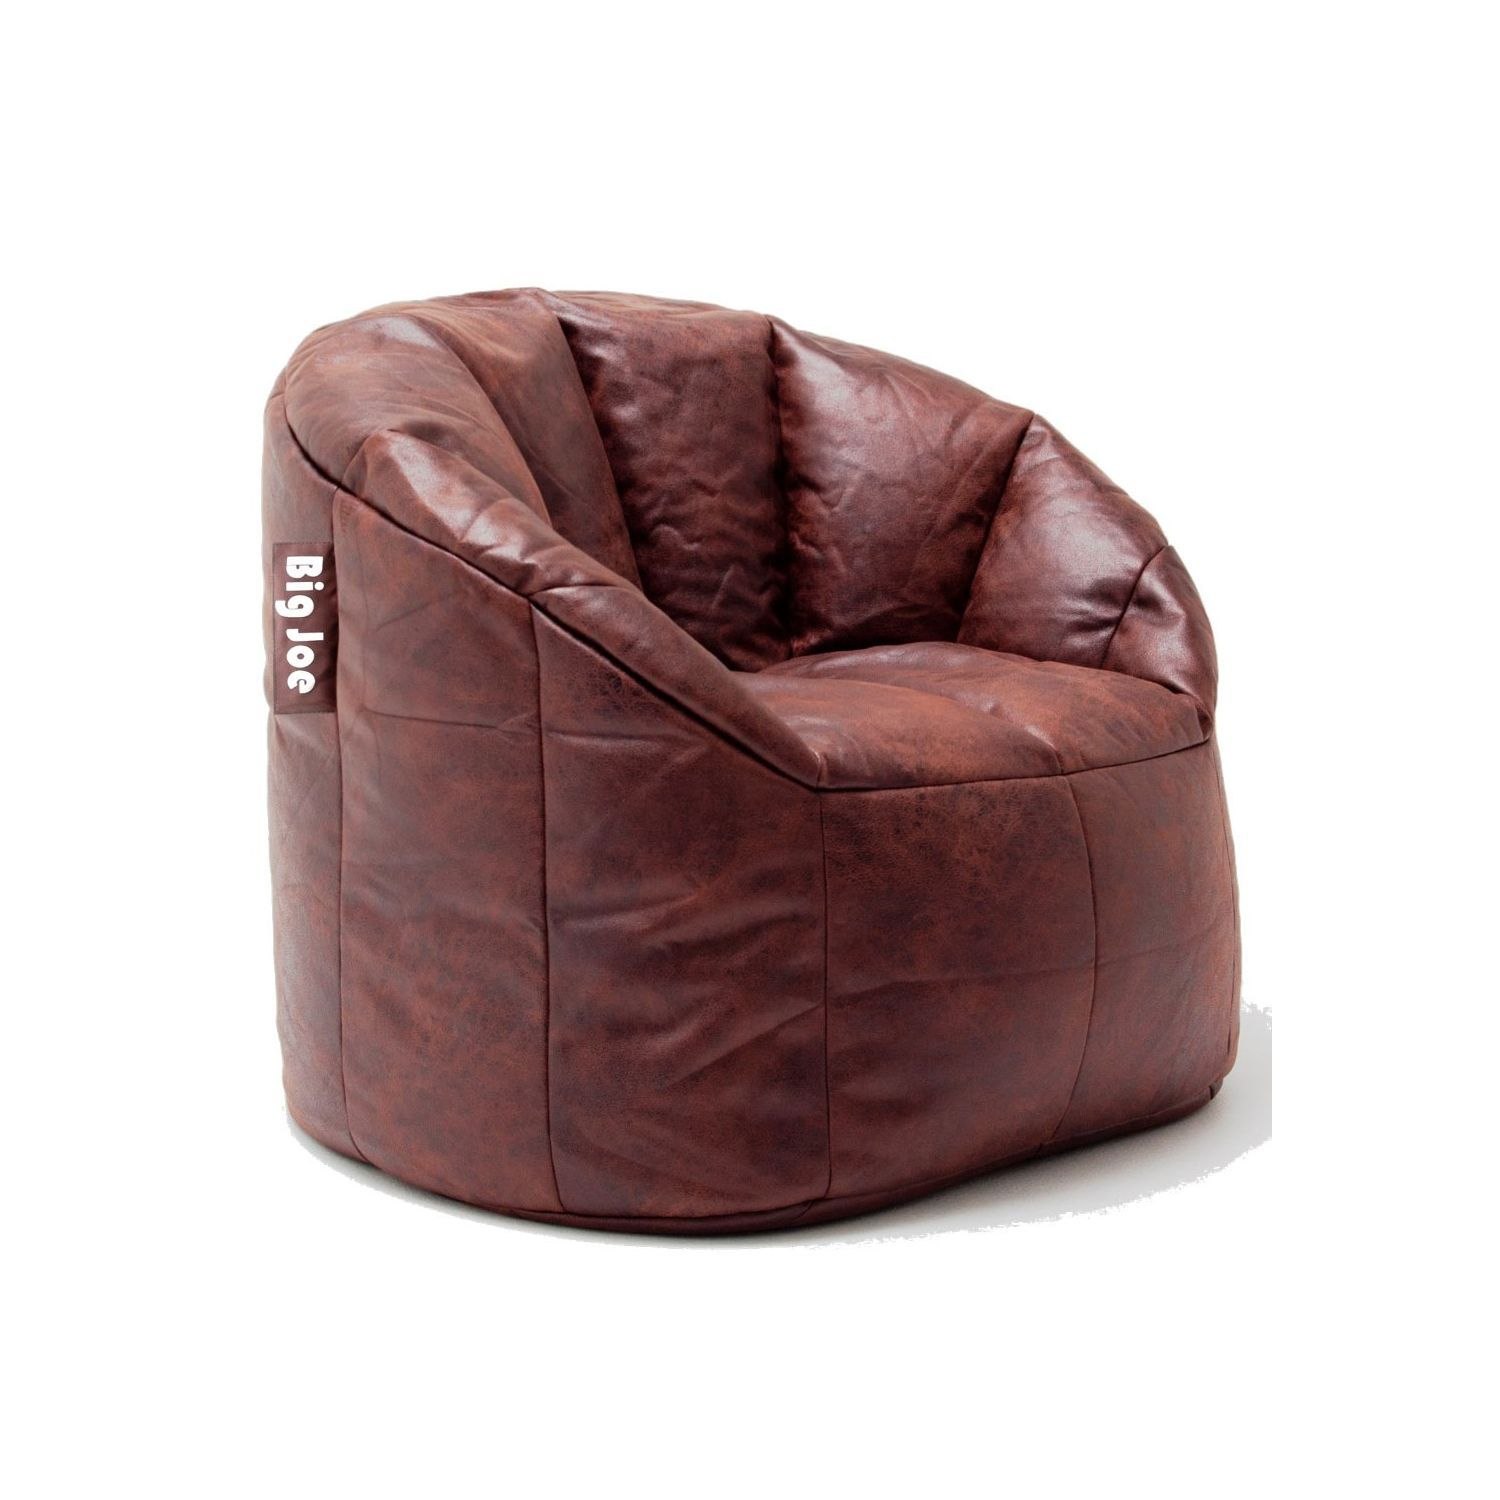 Astounding Big Joe Large Milano Tucson Faux Leather Sams Club Squirreltailoven Fun Painted Chair Ideas Images Squirreltailovenorg